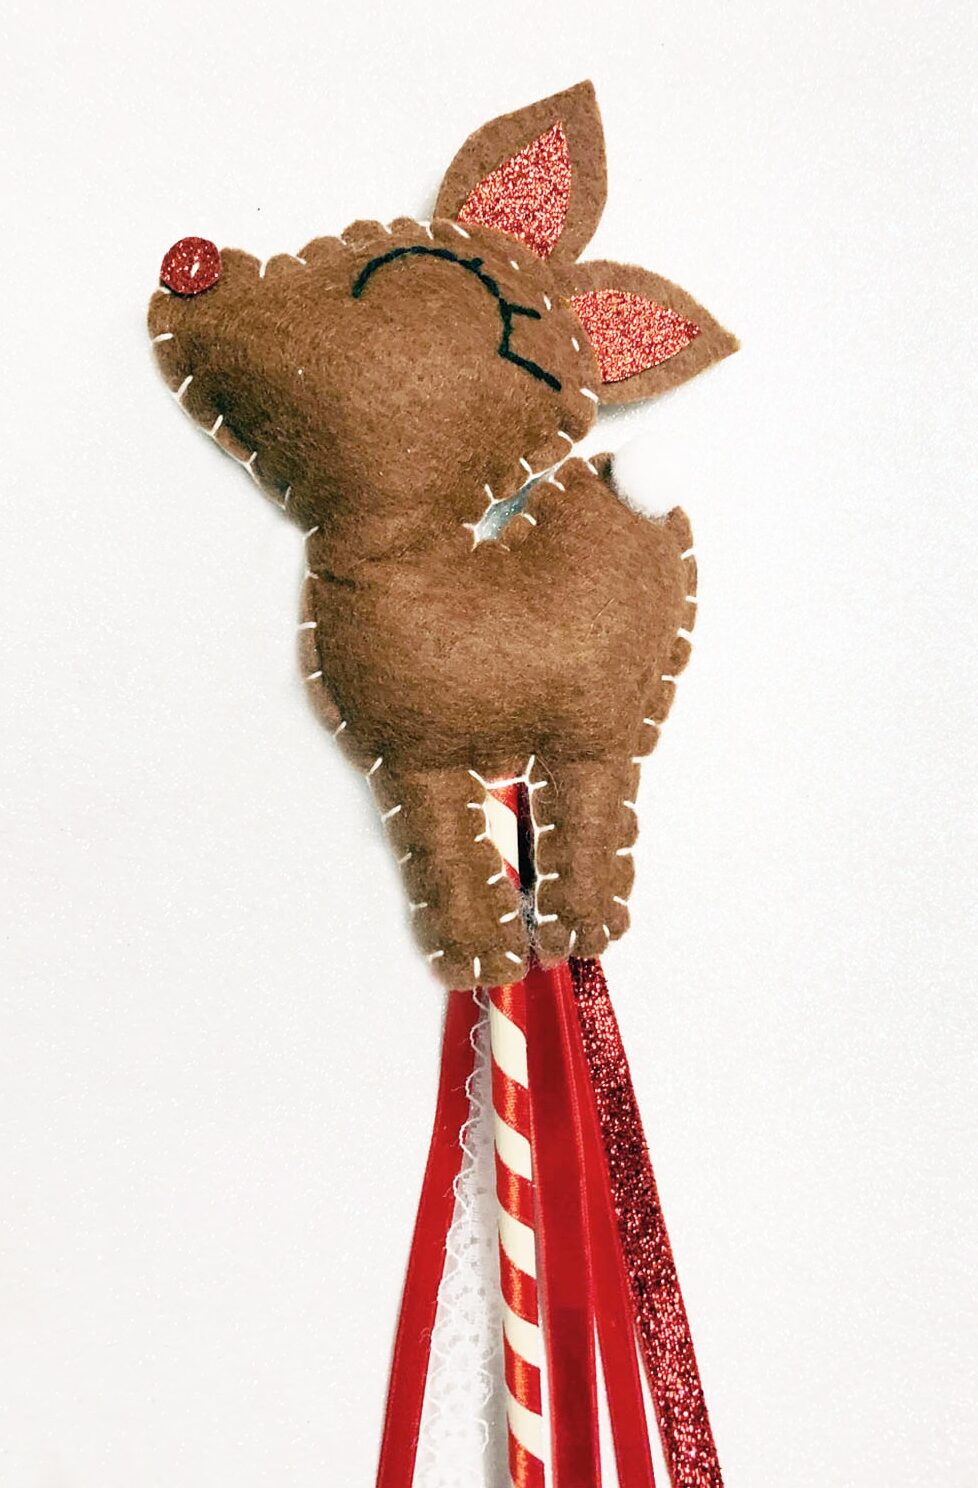 Reindeer Craft | Make A Wand or Ornament!